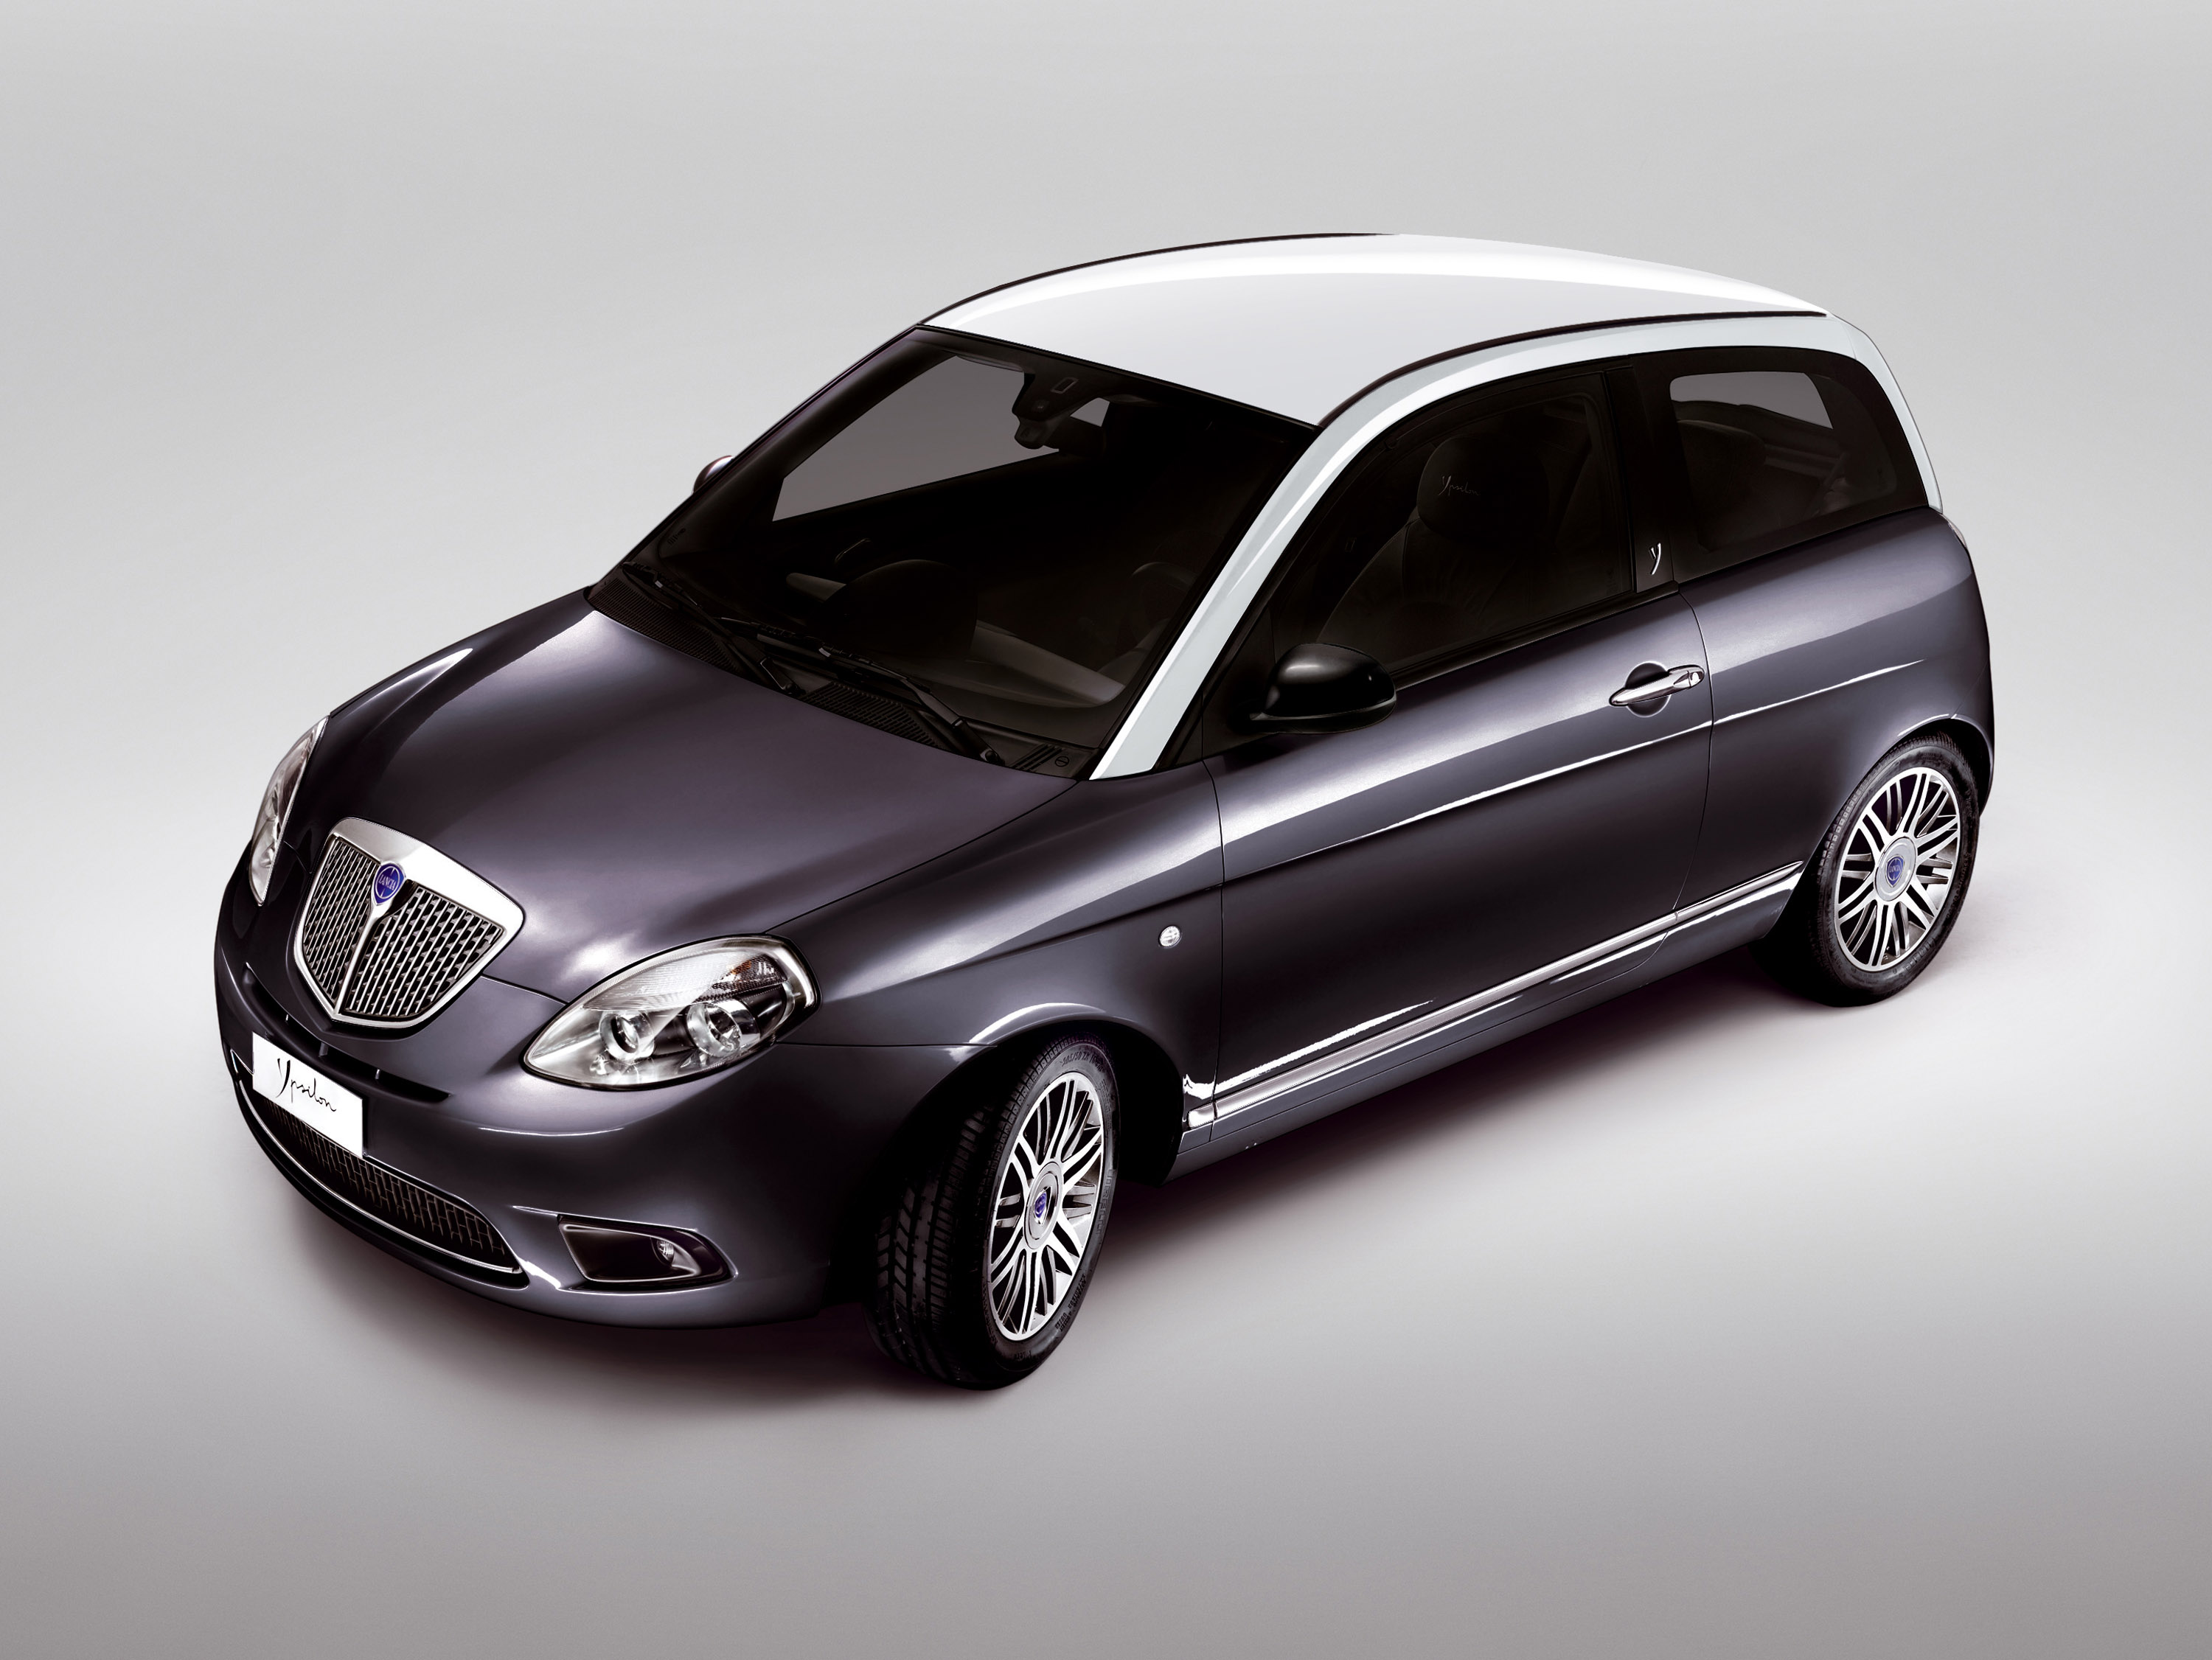 Lancia Ypsilon 2011 Model Shoots The Promos At Los